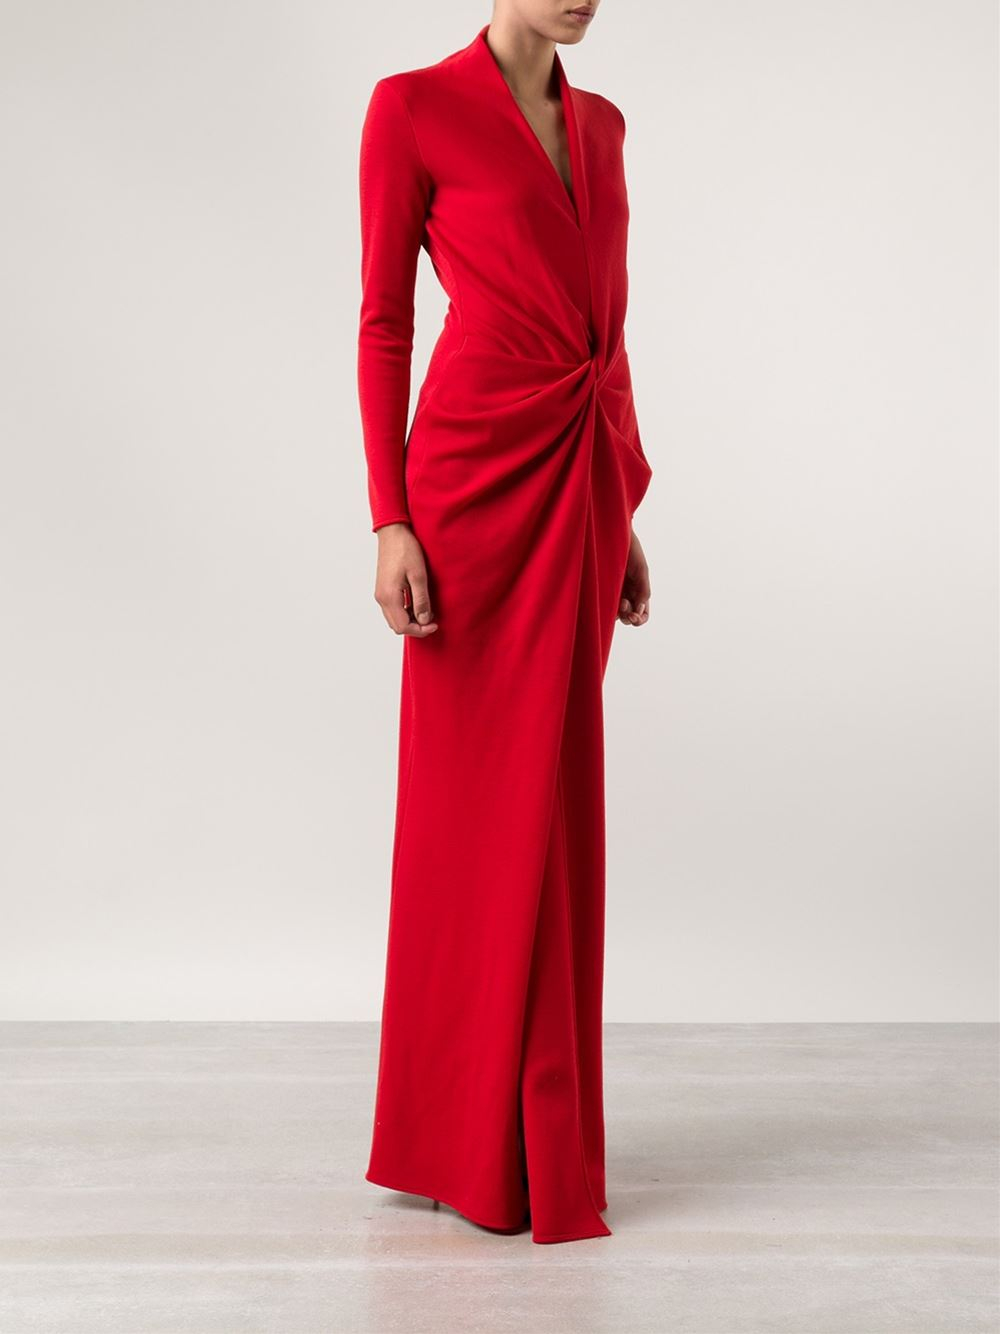 Red Lyst Long Lanvin Gown Jersey In qrPgPXwUTx